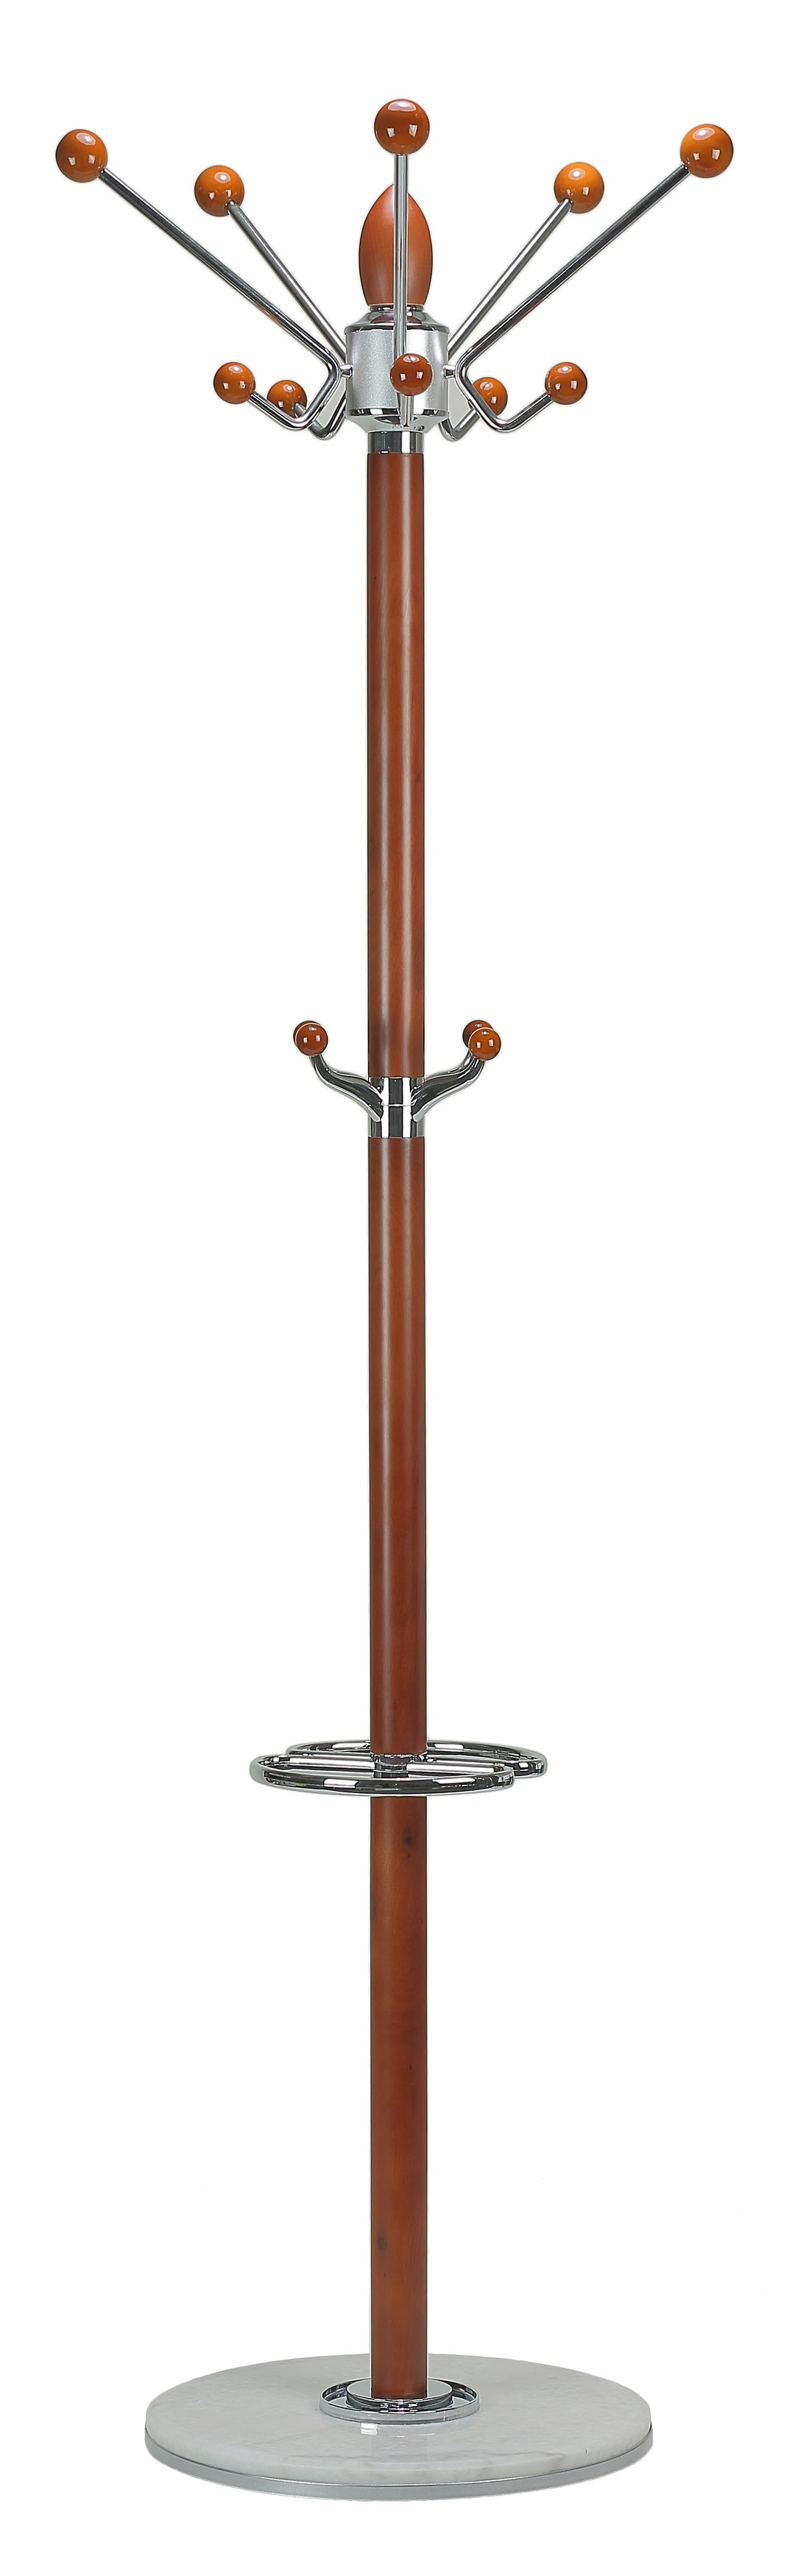 Cortesi Home Lava Light in Chrome and Cherry Wood Coat Rack, Light Marble